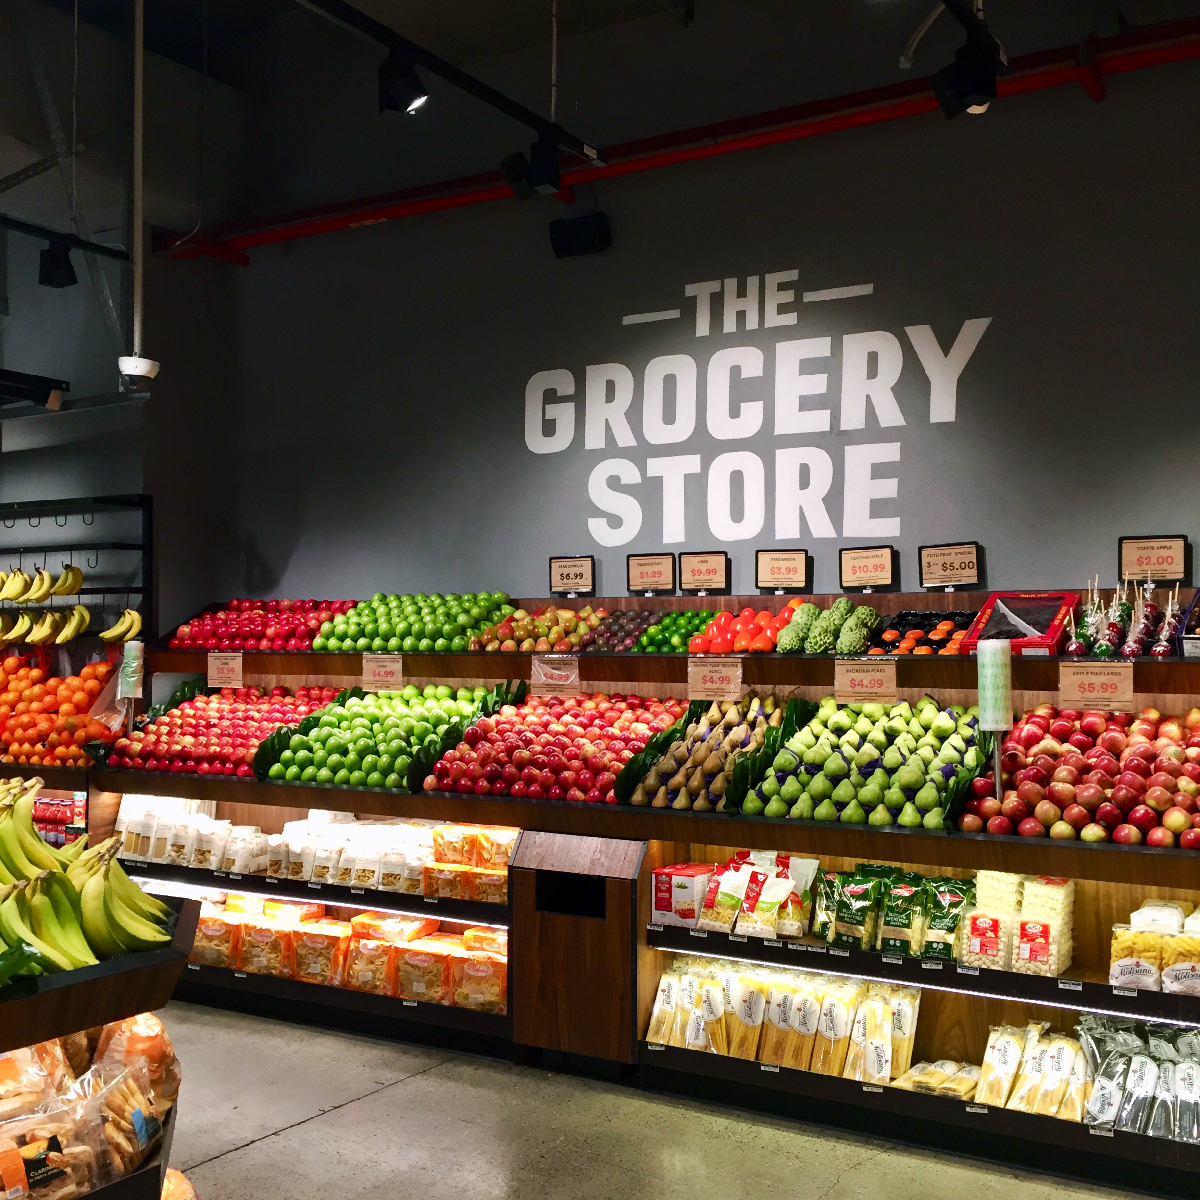 The Grocery Store and Don't Tell The Grocer Cafe - Sydney